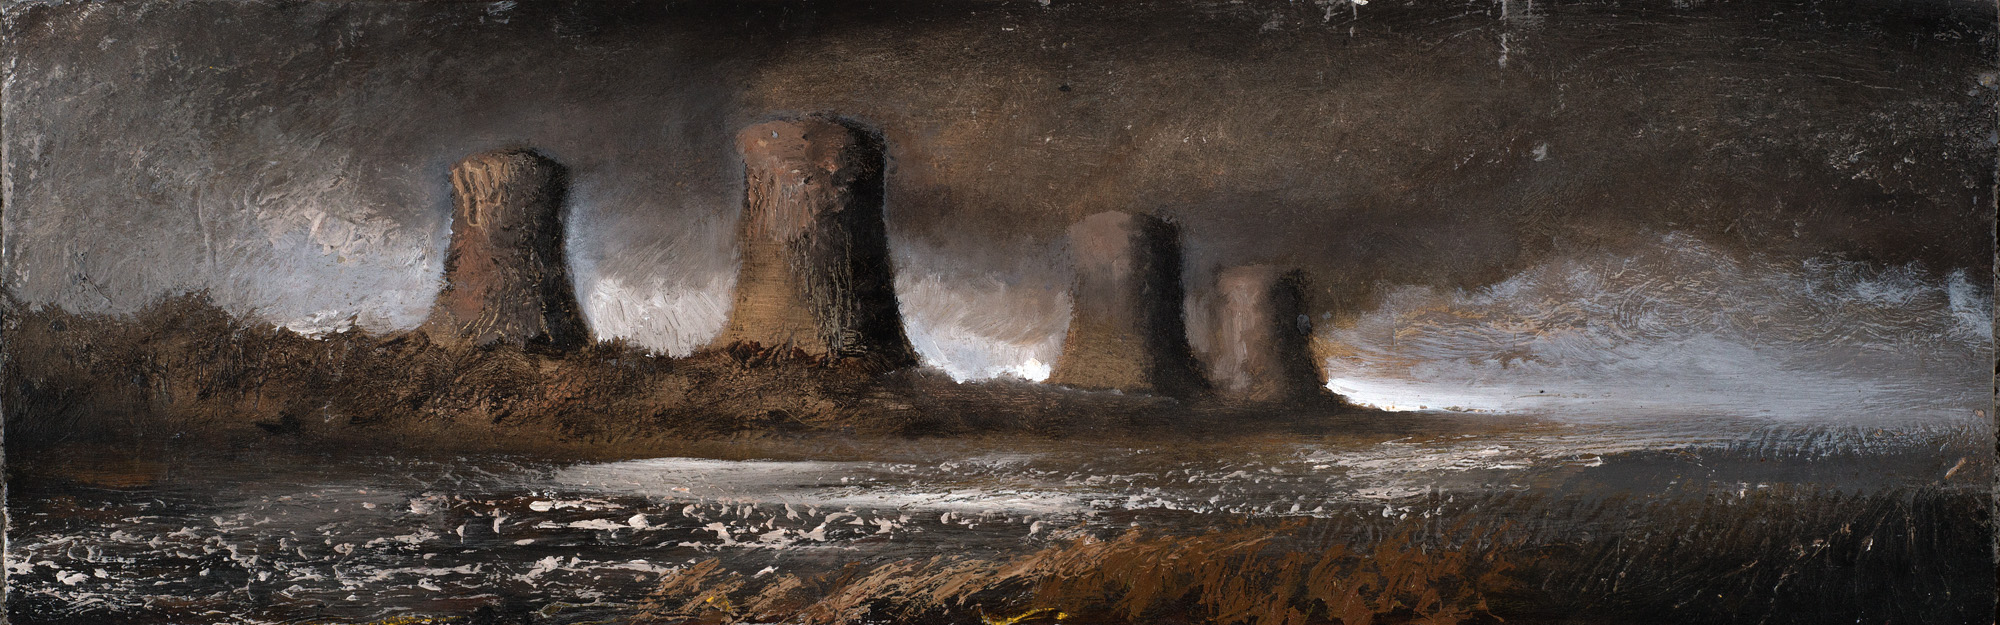 Nuclear Tombs Study VI